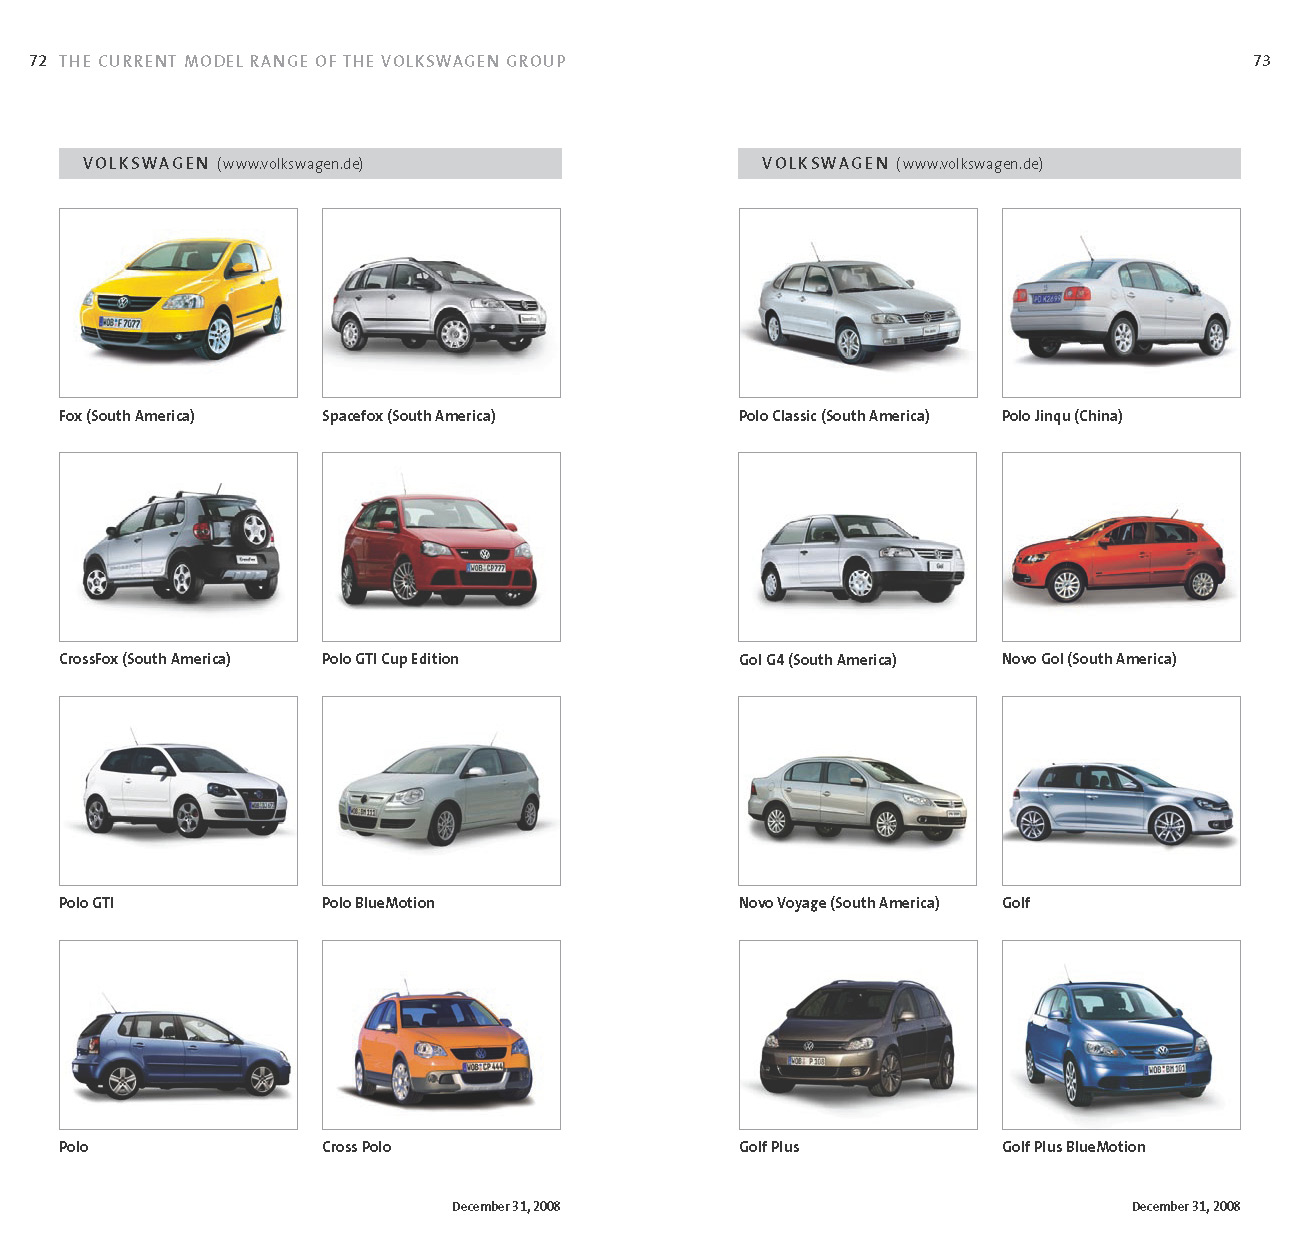 SPORT CARS 2011: Complete List Of VW Group's 178 Models